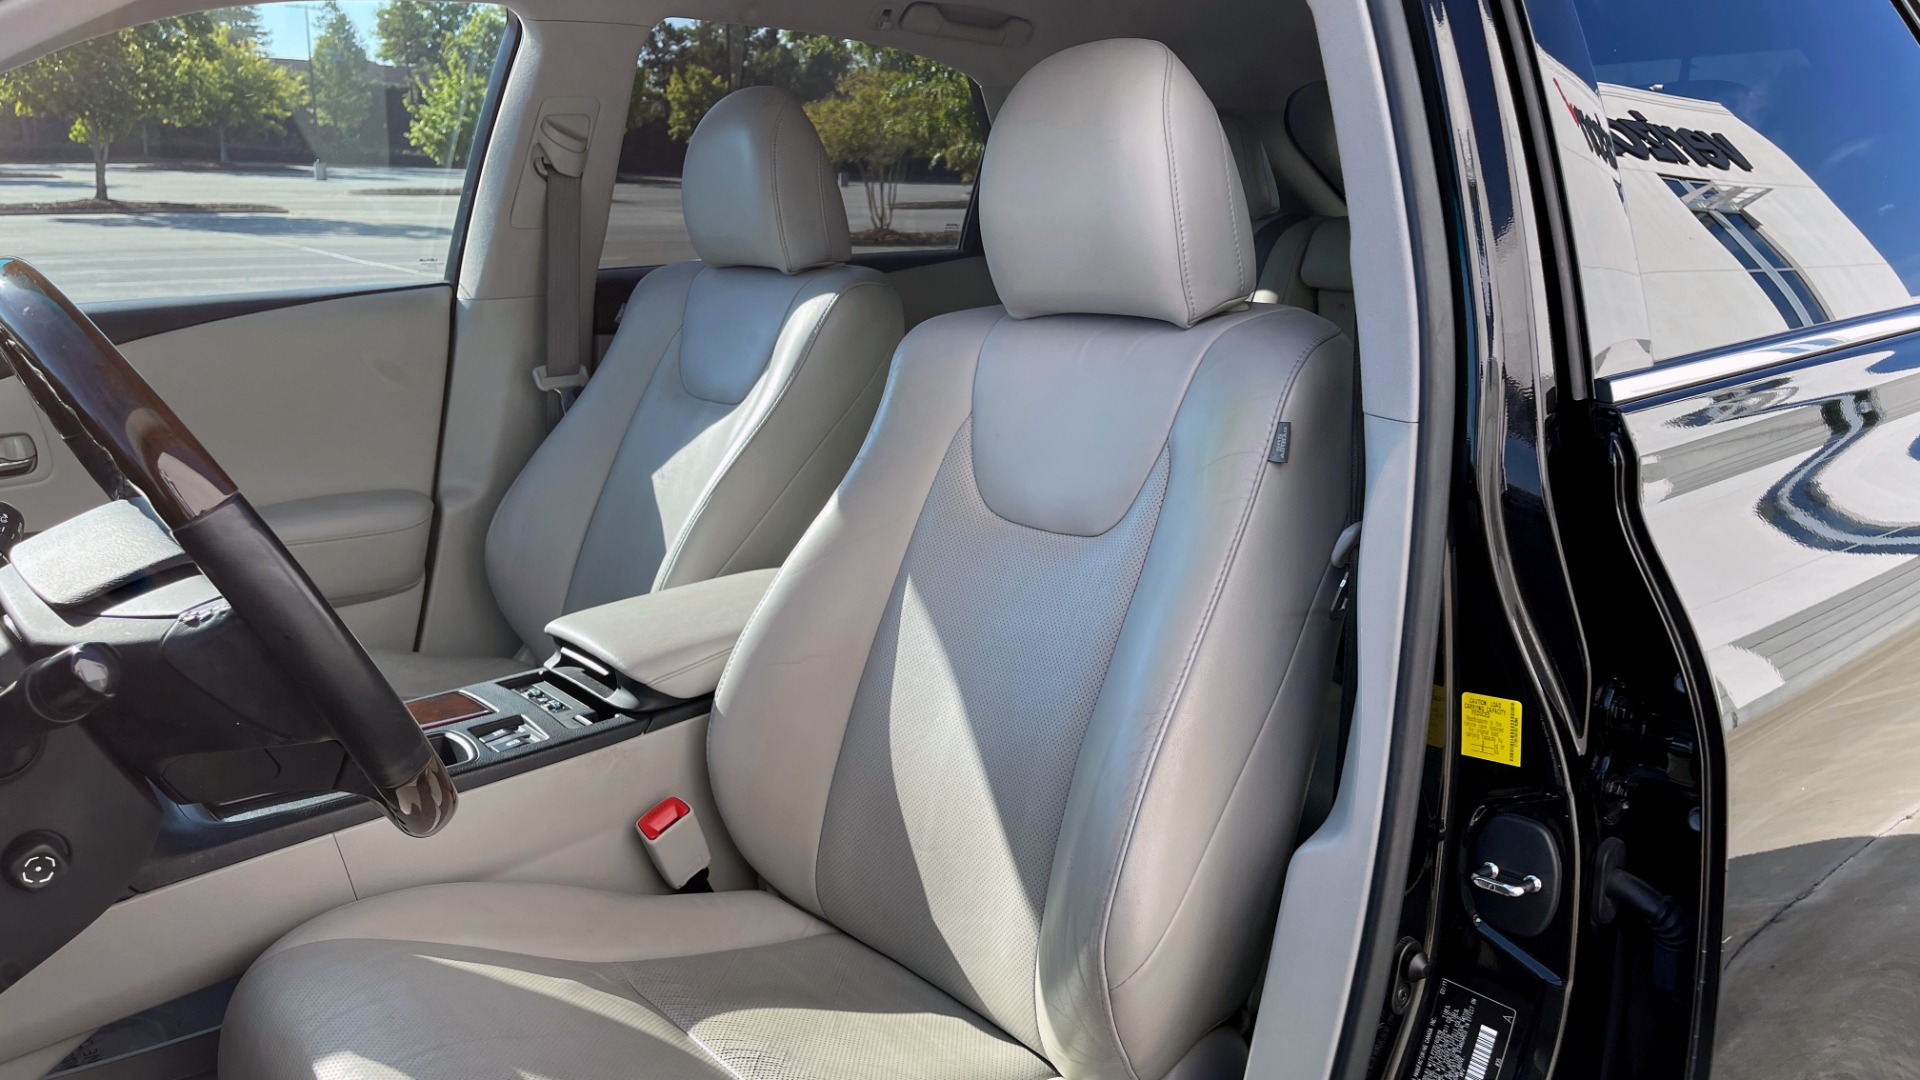 Used 2011 Lexus RX 350 PREMIUM / TOWING PREP PKG / VENTILATED STS / SUNROOF / REARVIEW for sale Sold at Formula Imports in Charlotte NC 28227 27